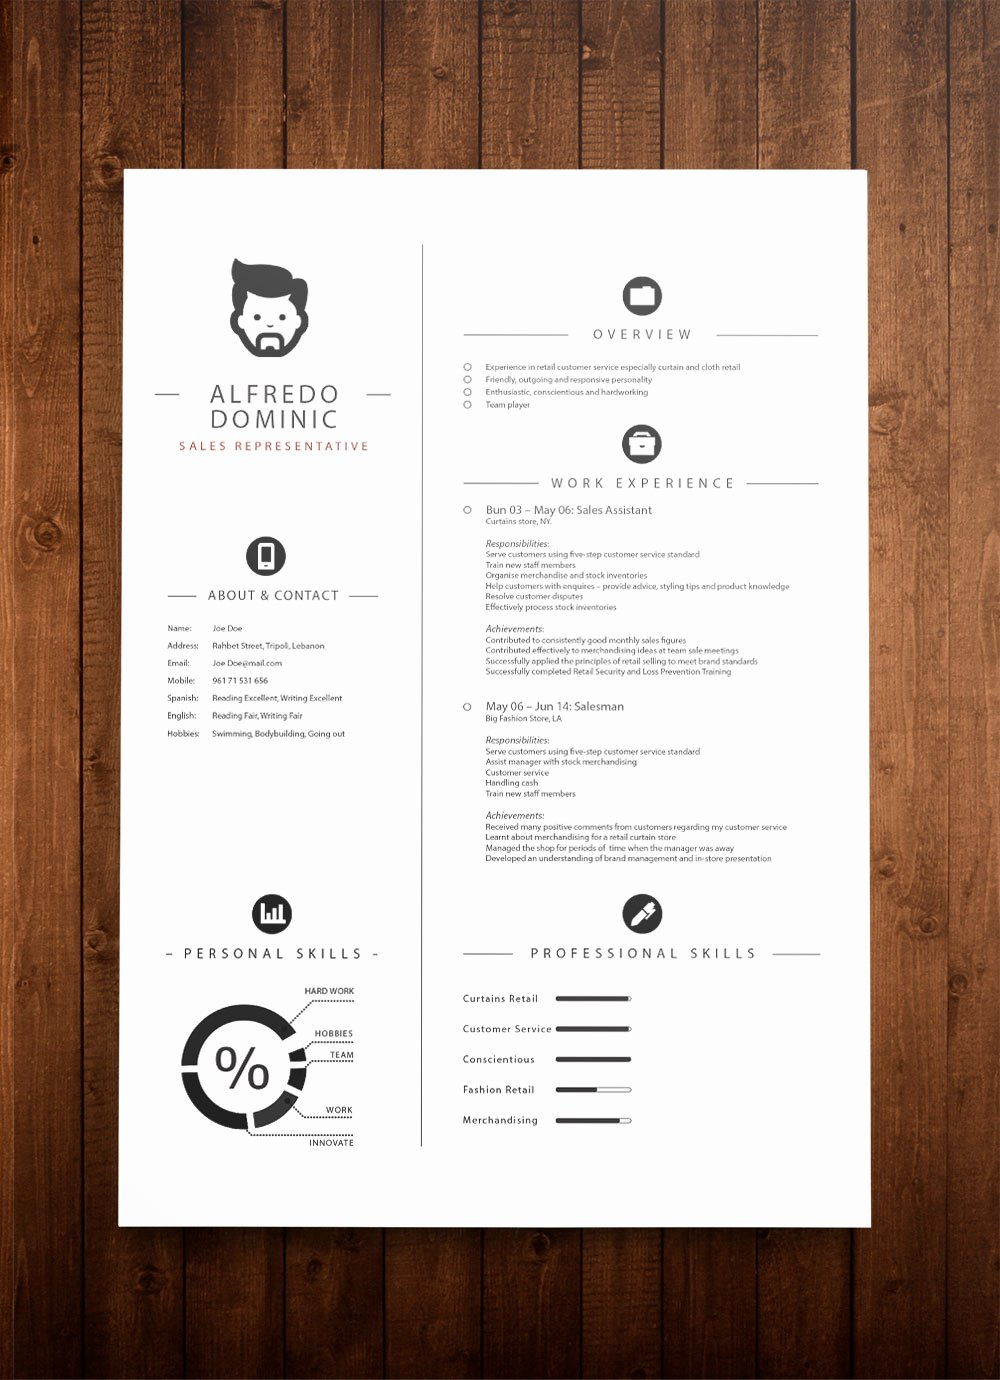 Format for Curriculum Vitae Beautiful top 3 Resume Templates In February 2015